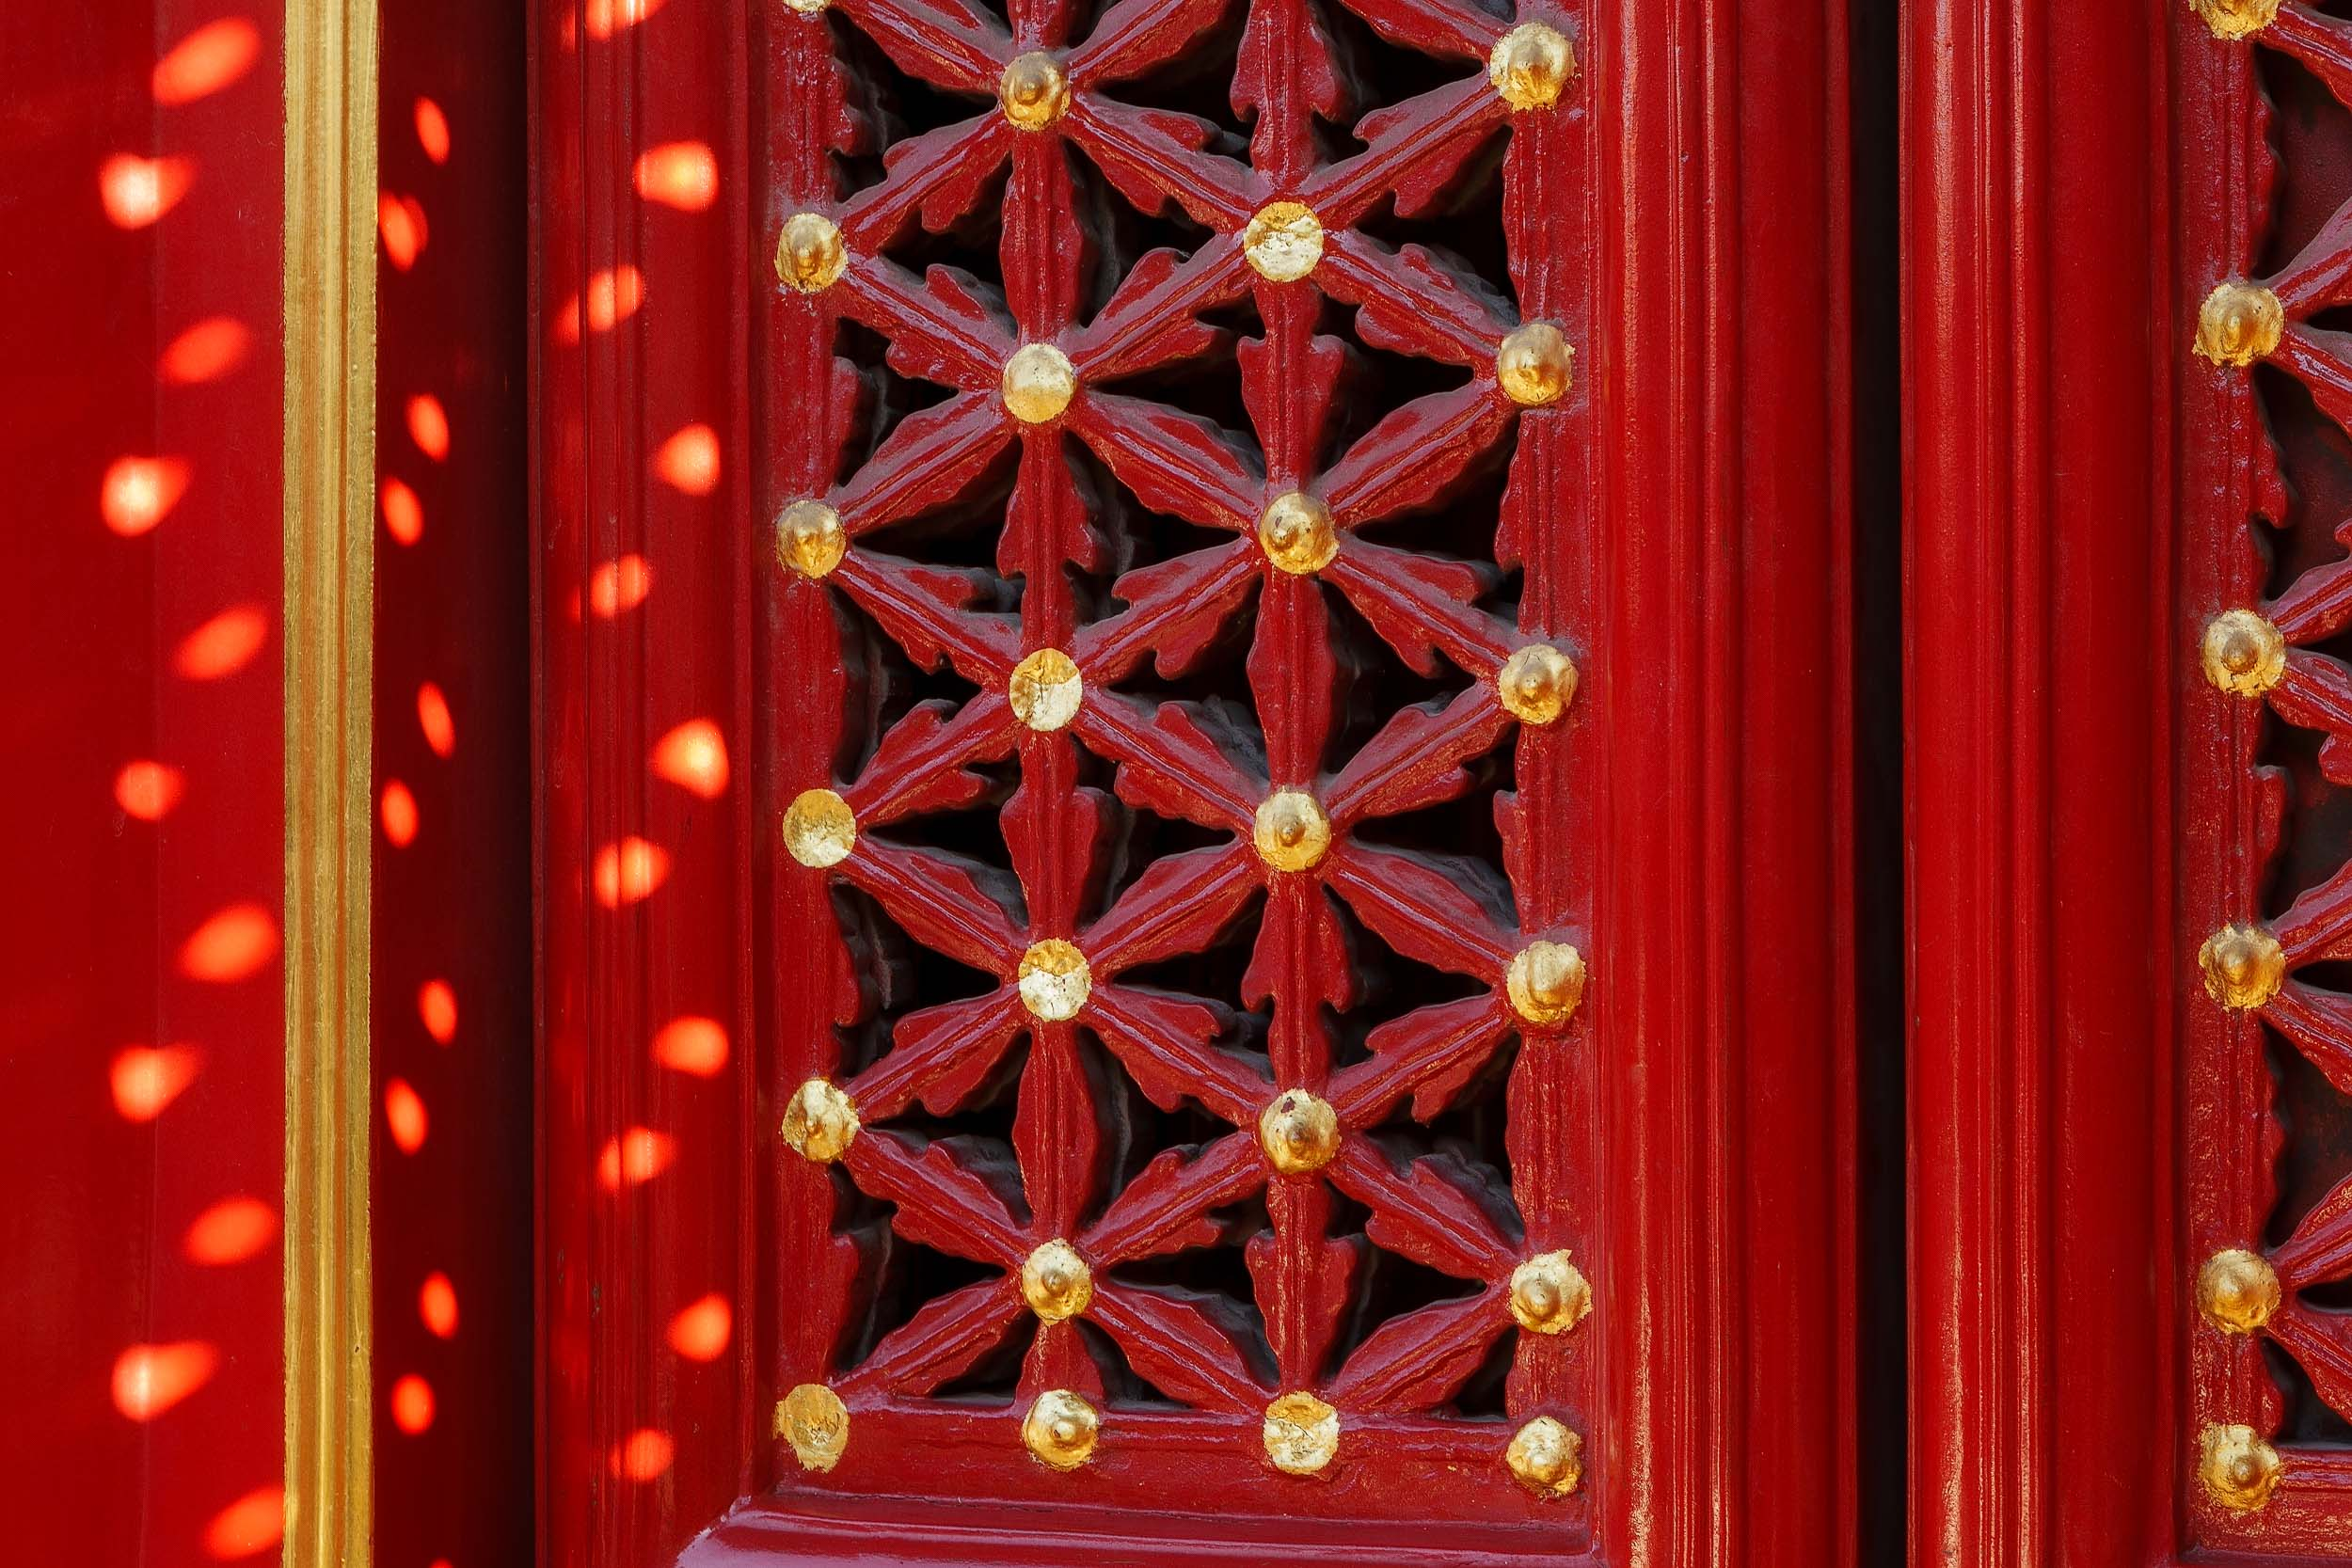 Photographing China will reveal many gifts to you like this image of light creating interesting shapes on a freshly painted window shutter in    The Forbidden City    in    Beijing, China   .